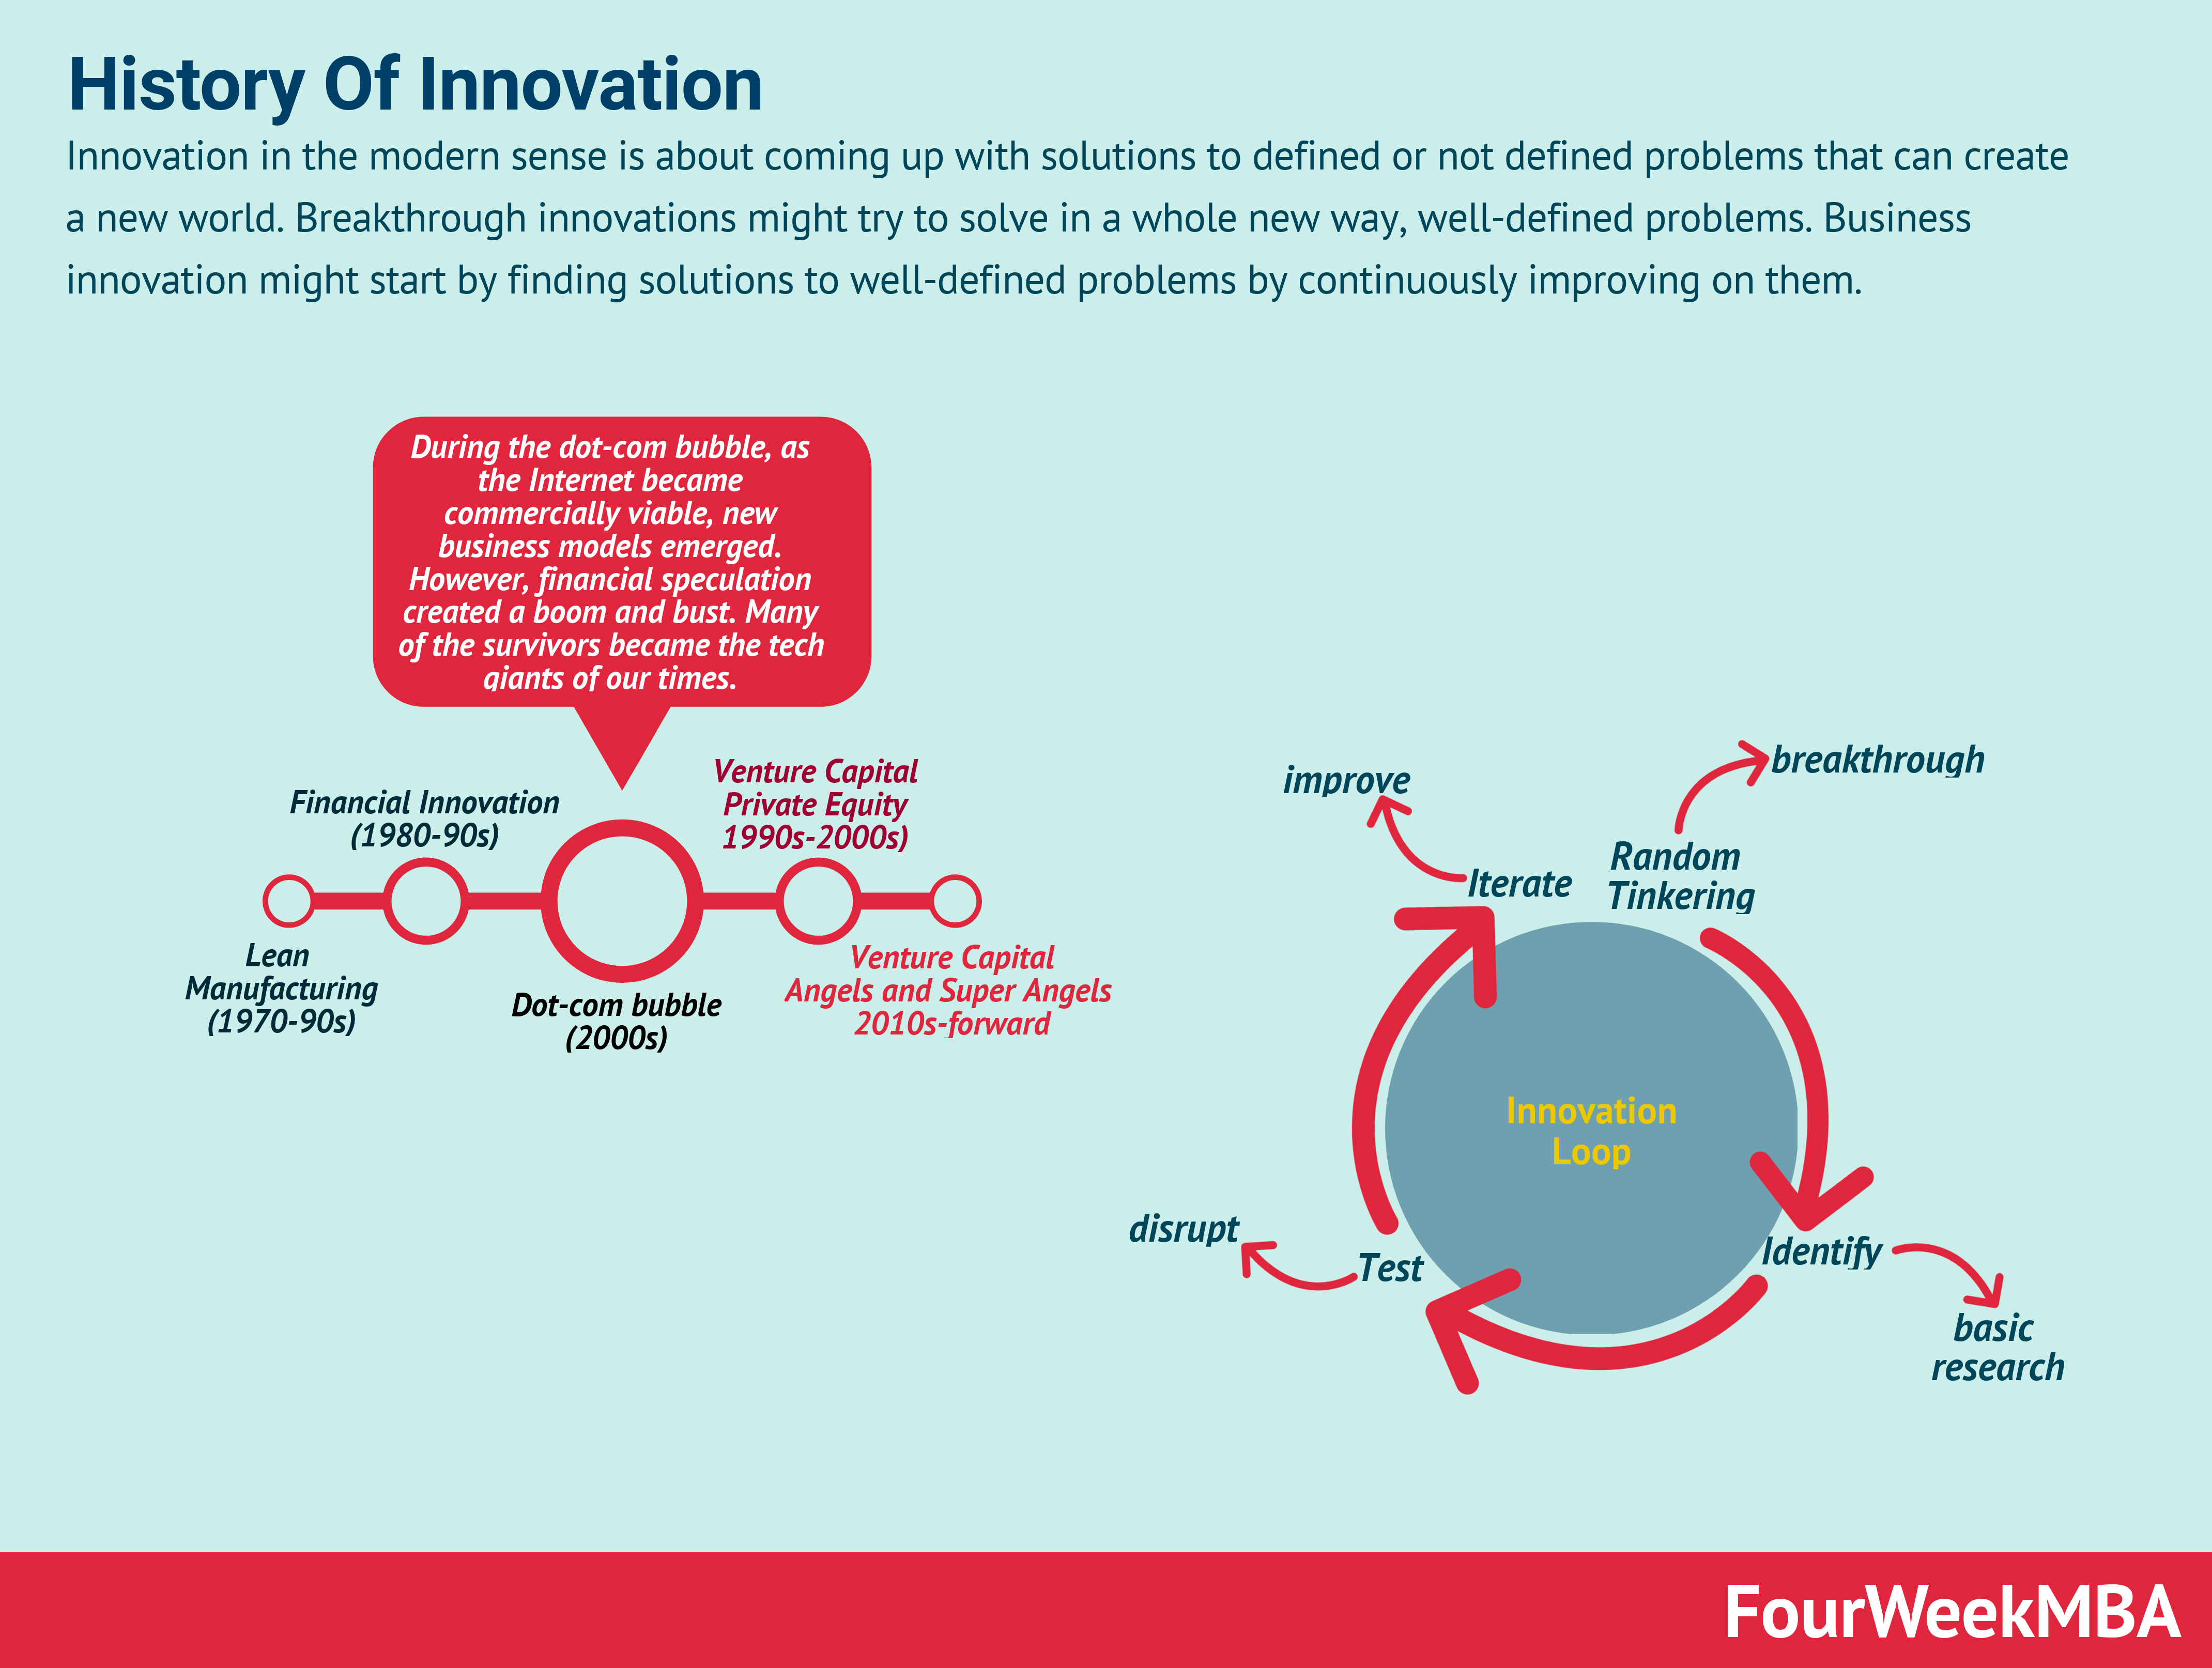 Innovation in the modern sense is about coming up with solutions to defined or not defined problems that can create a new world. Breakthrough innovati